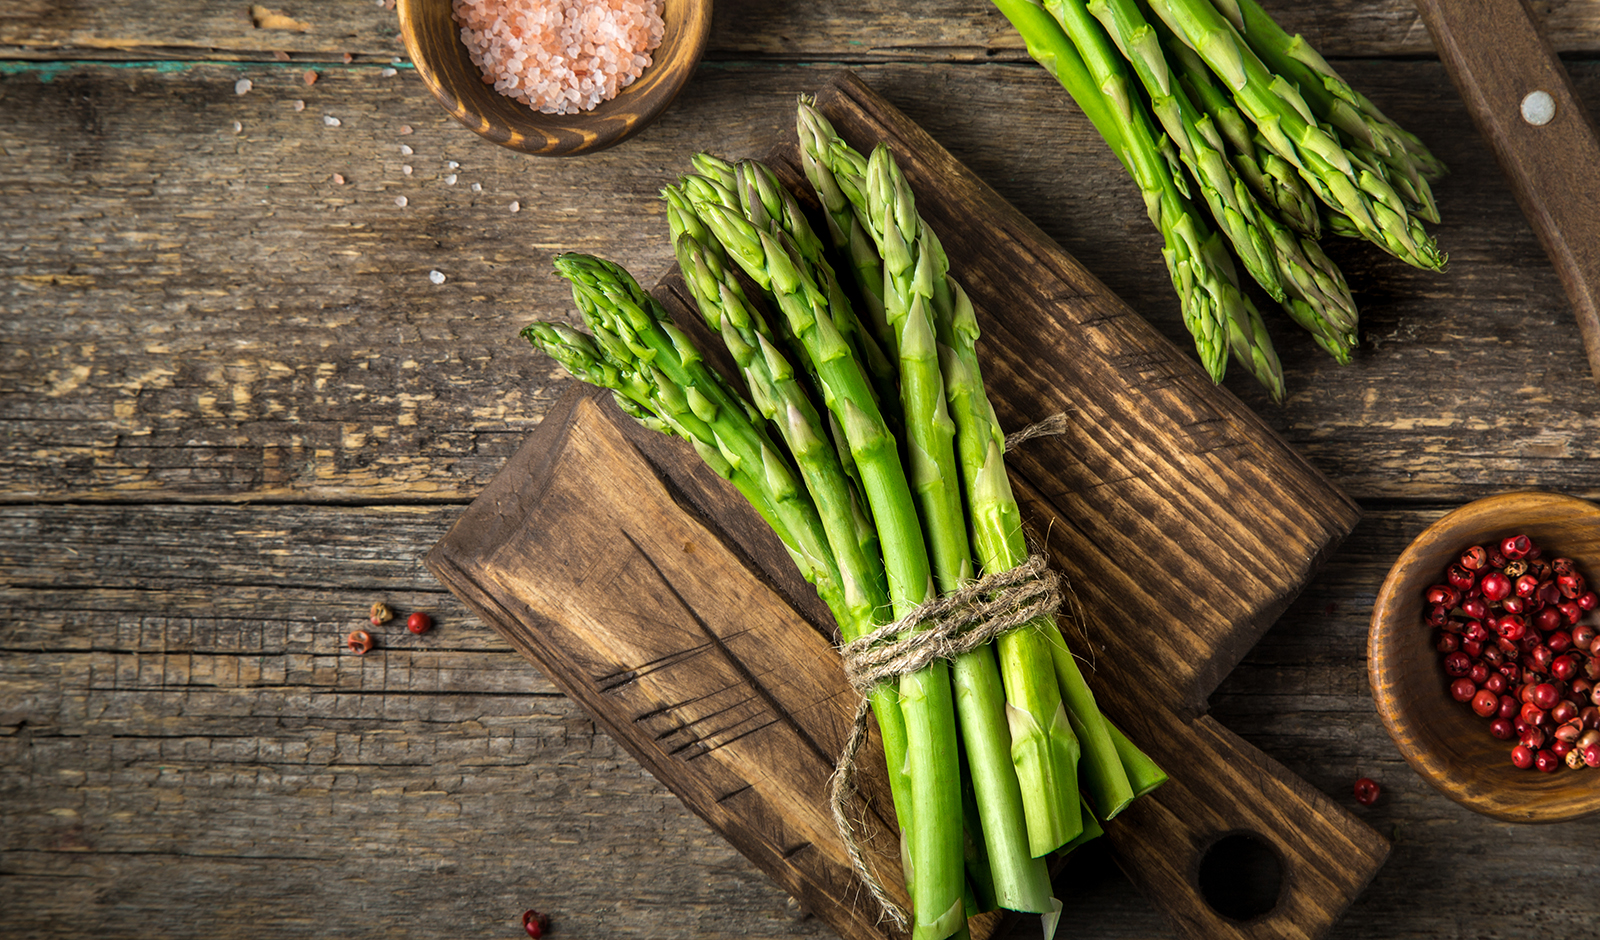 does-reheating-vegetables-cause-cancer-asparagus-laid-out-delicious